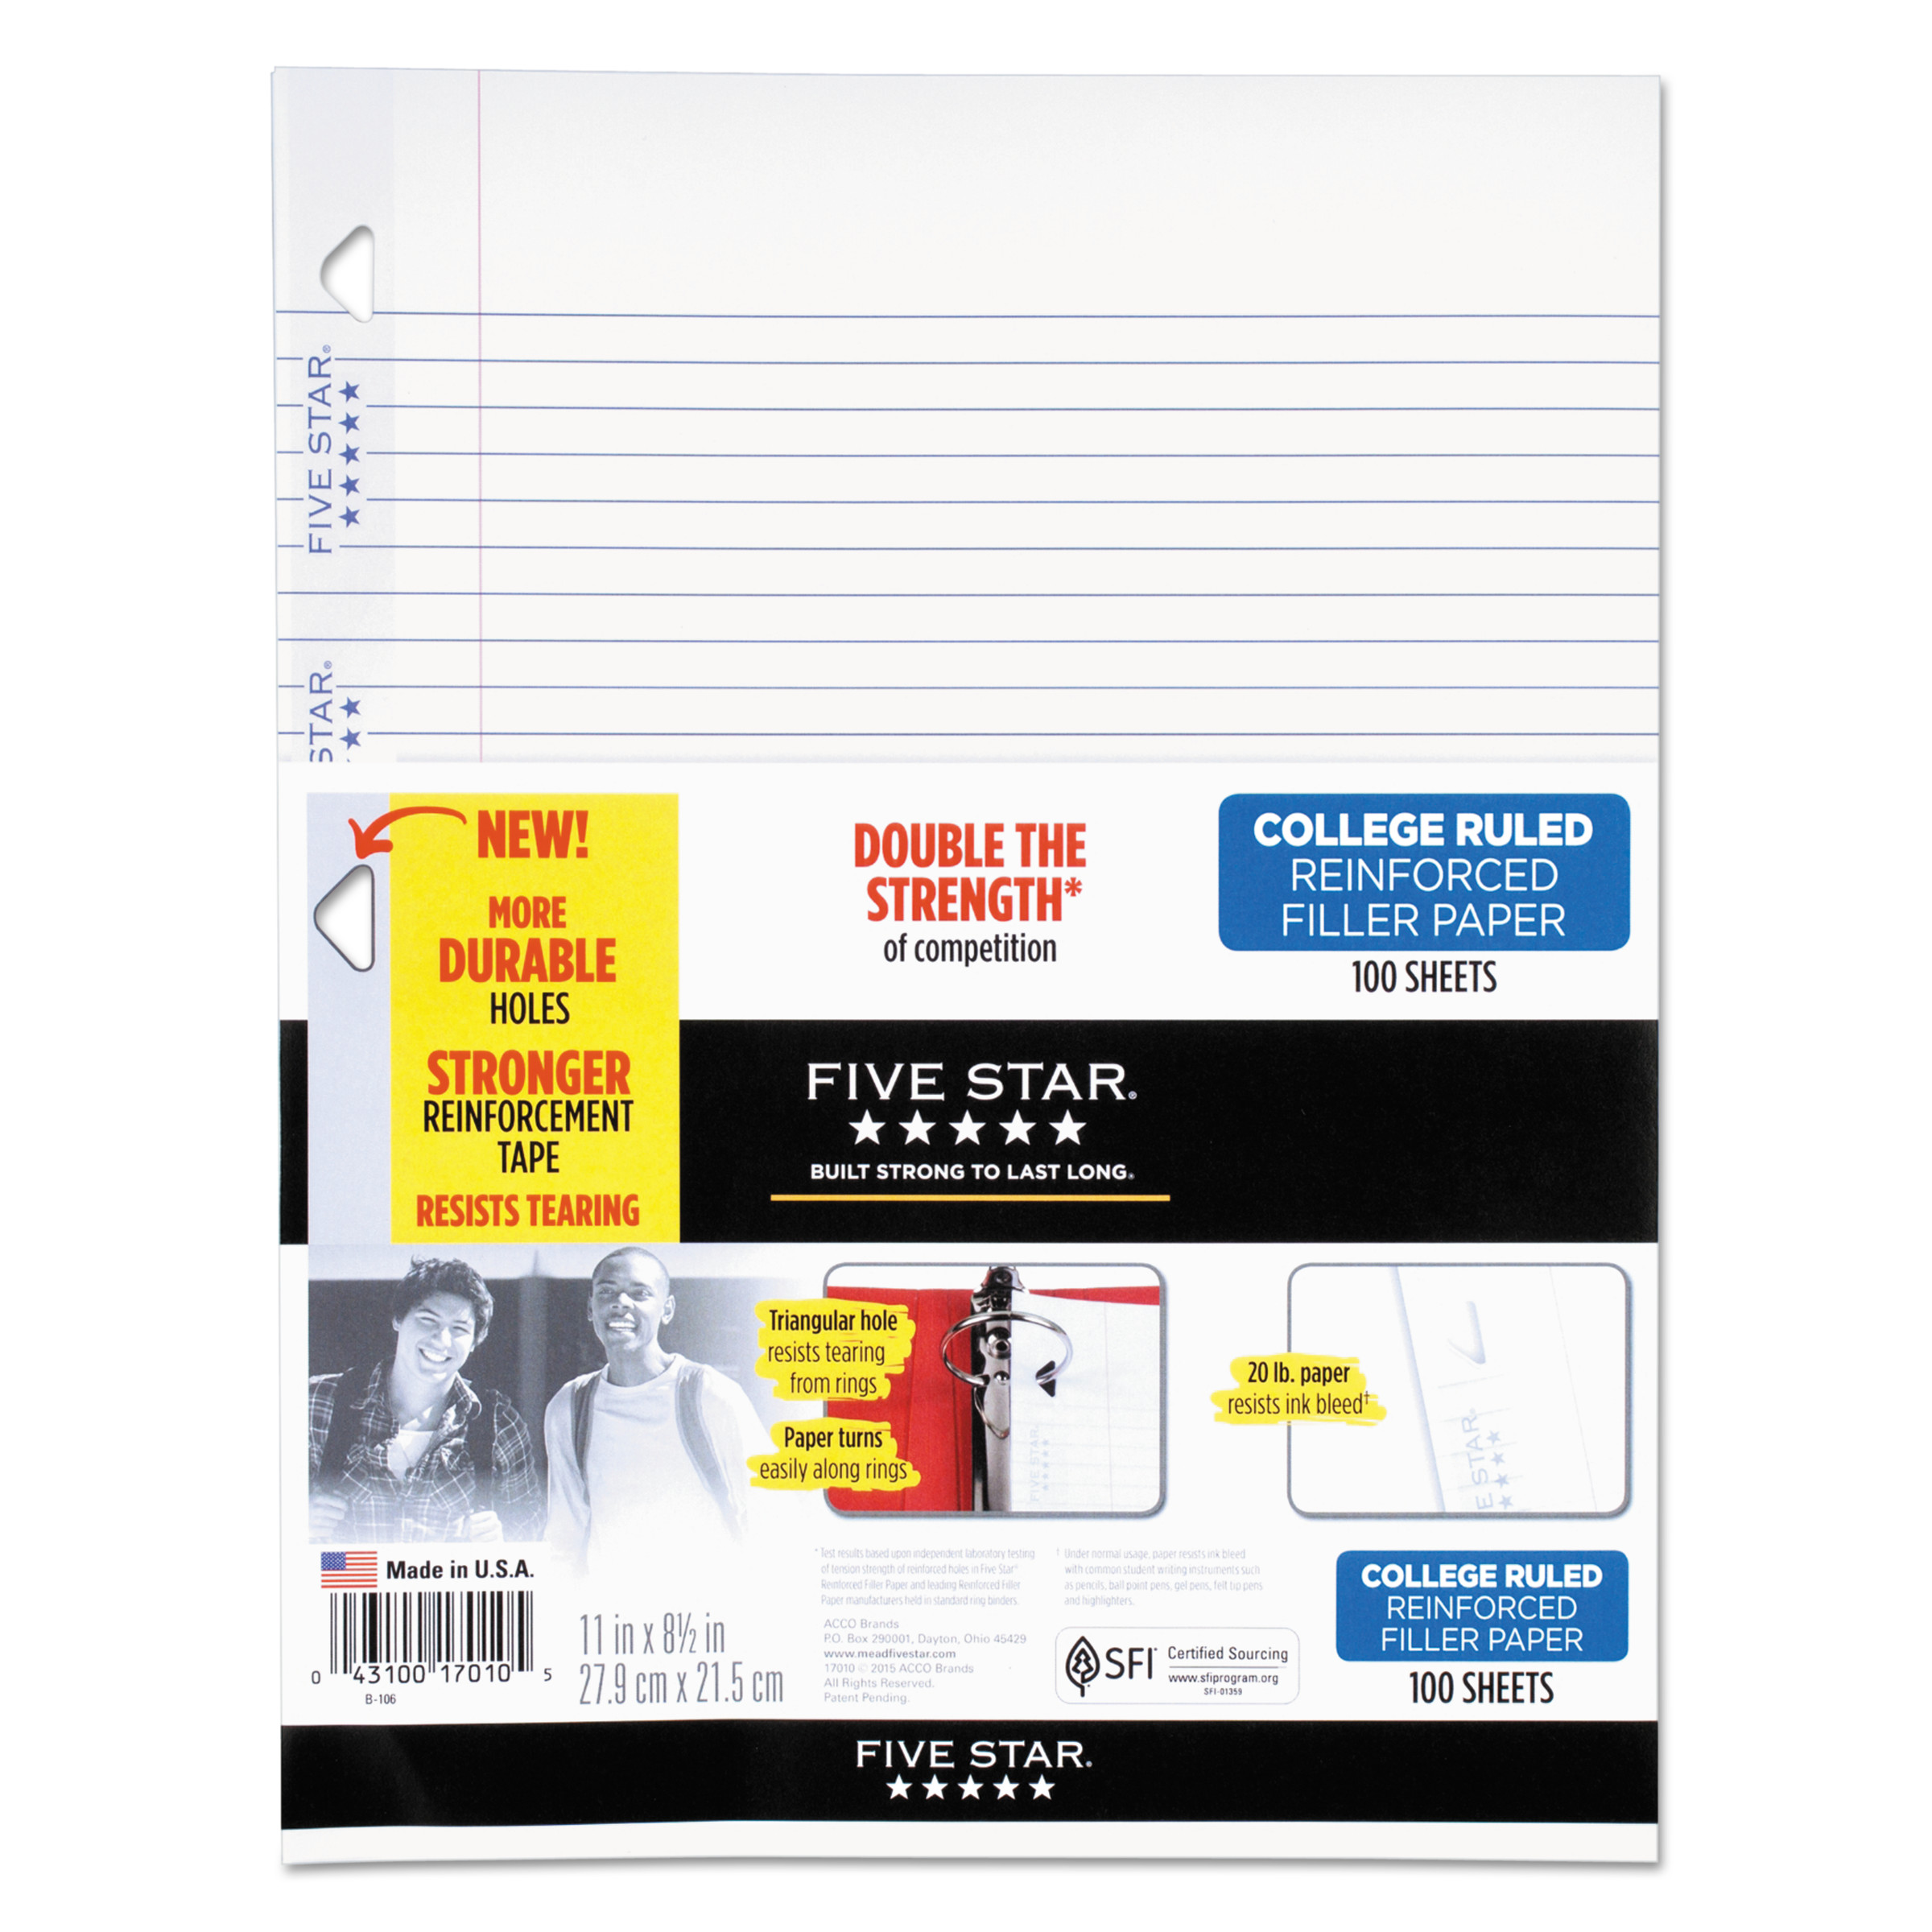 College Ruled Filler Paper – College Ruled Paper Template